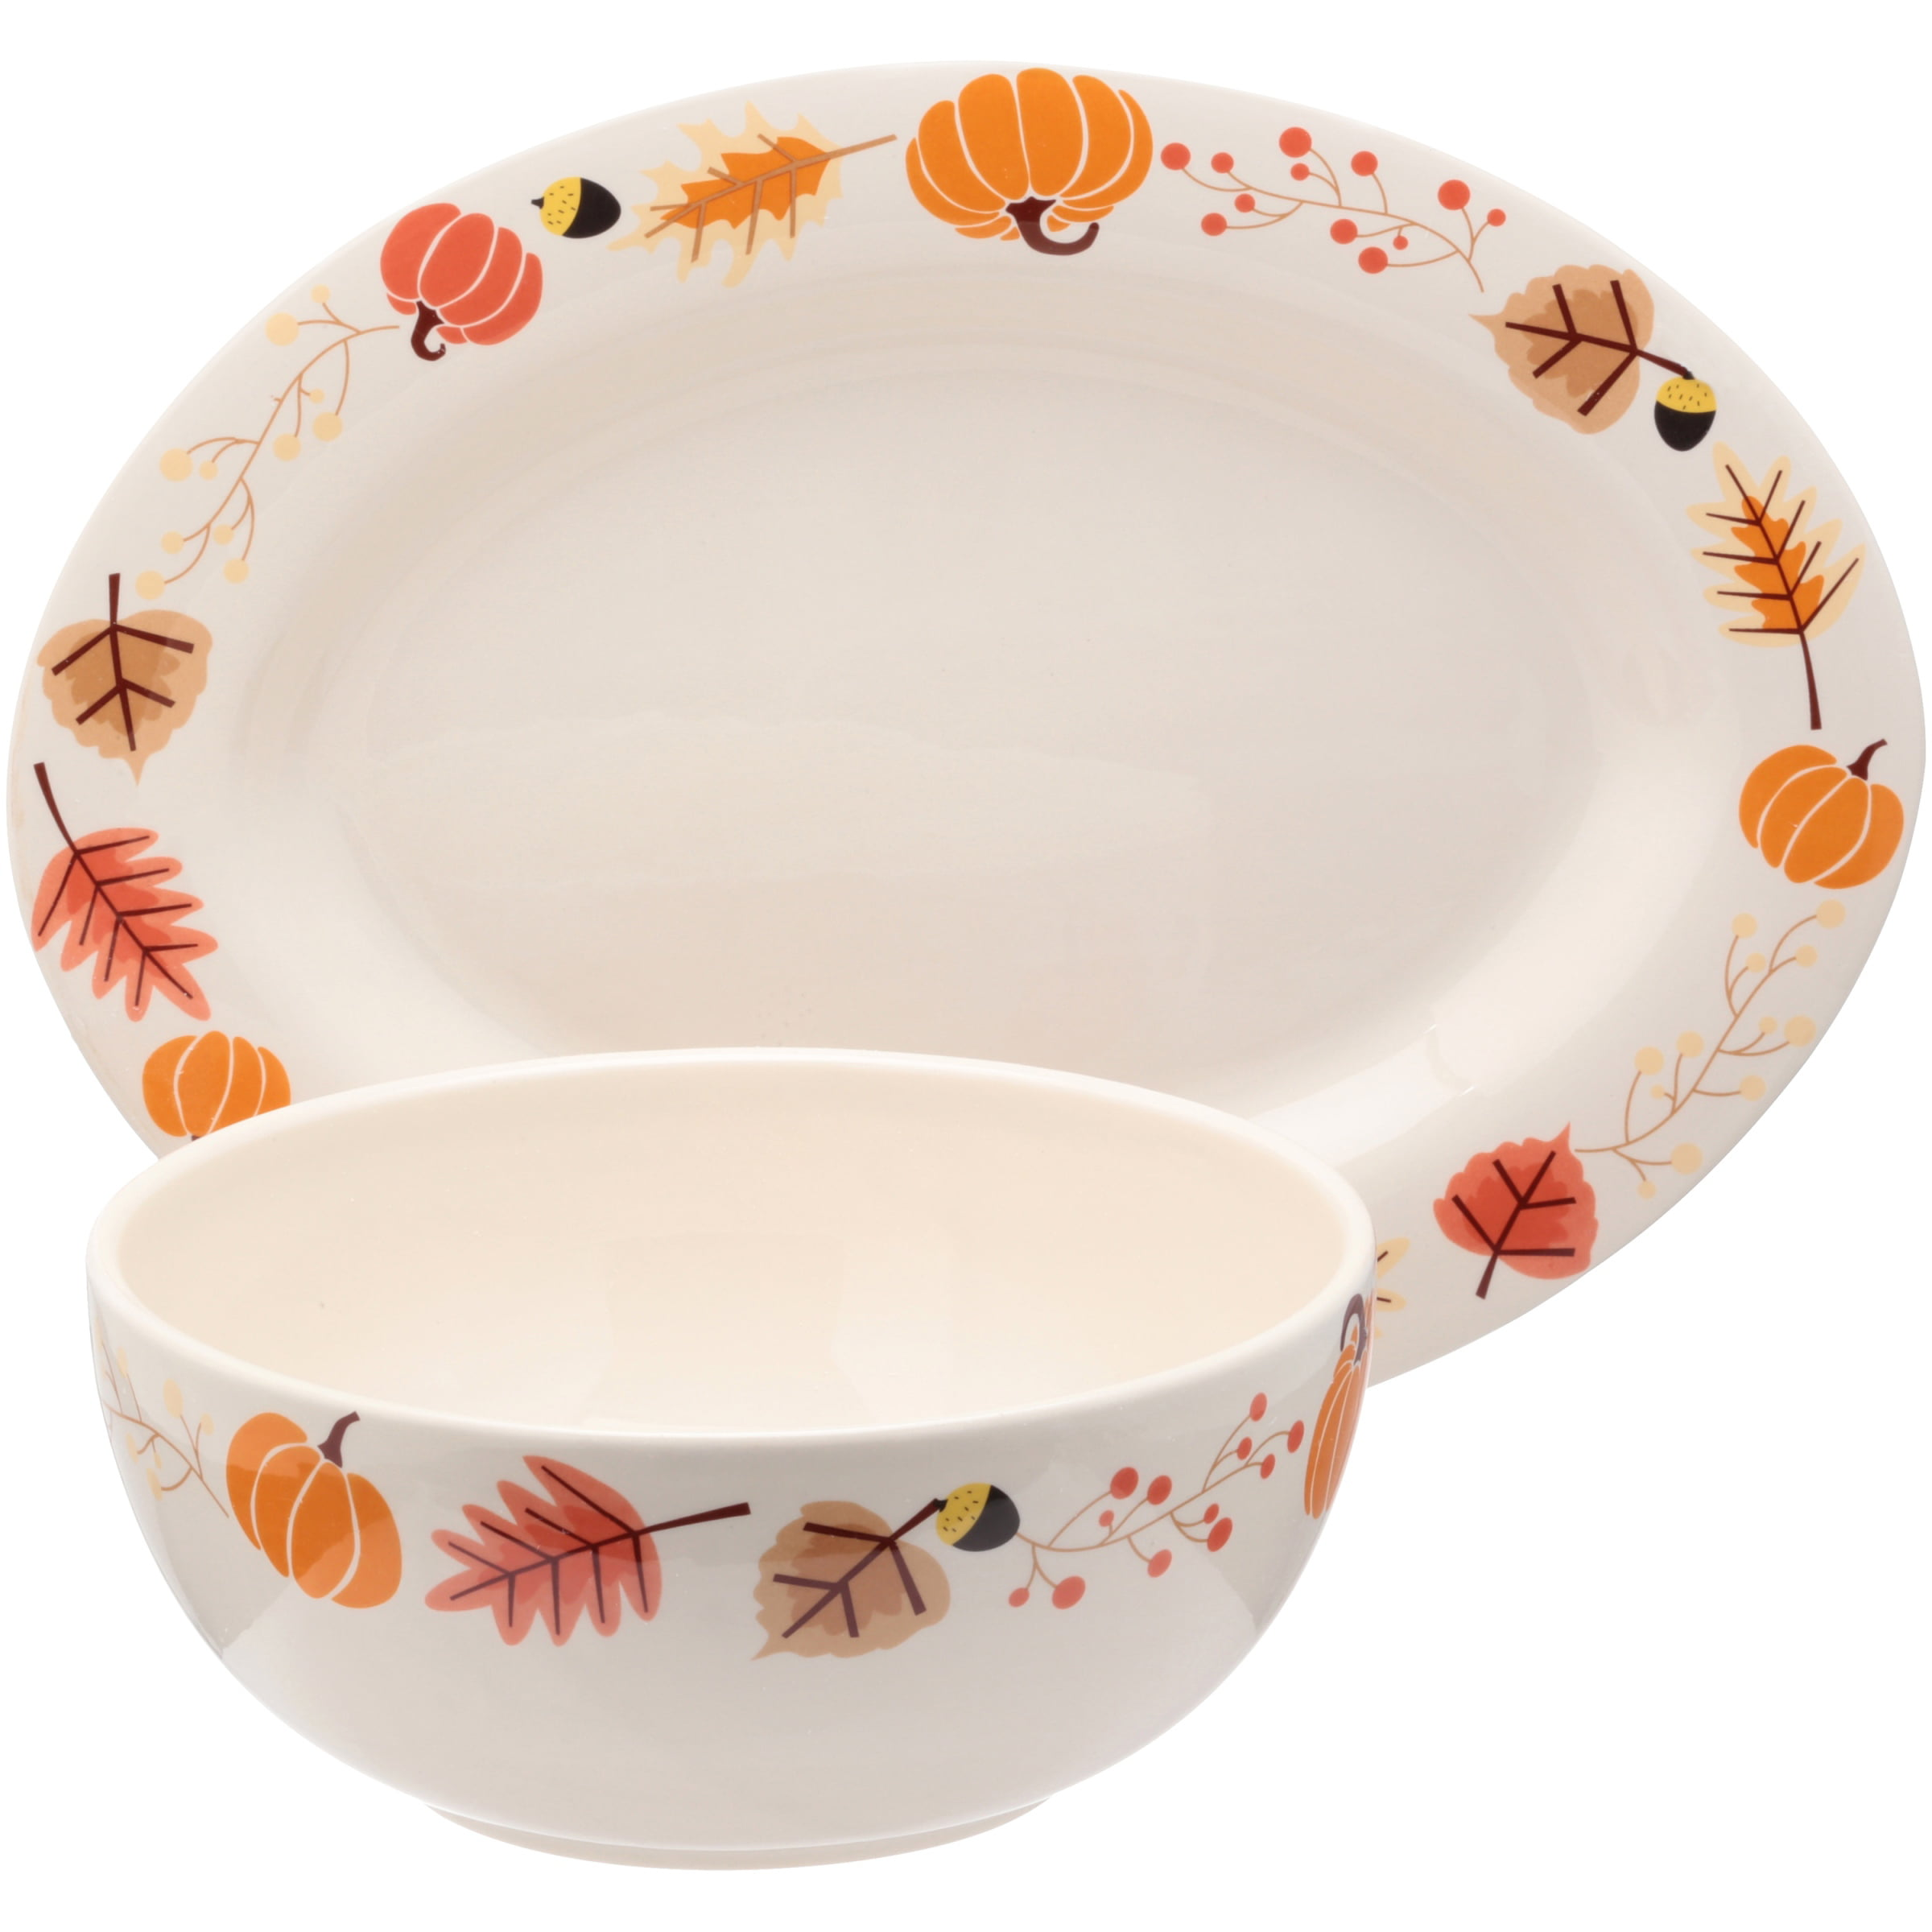 LEAVES of the Season Serving bowl